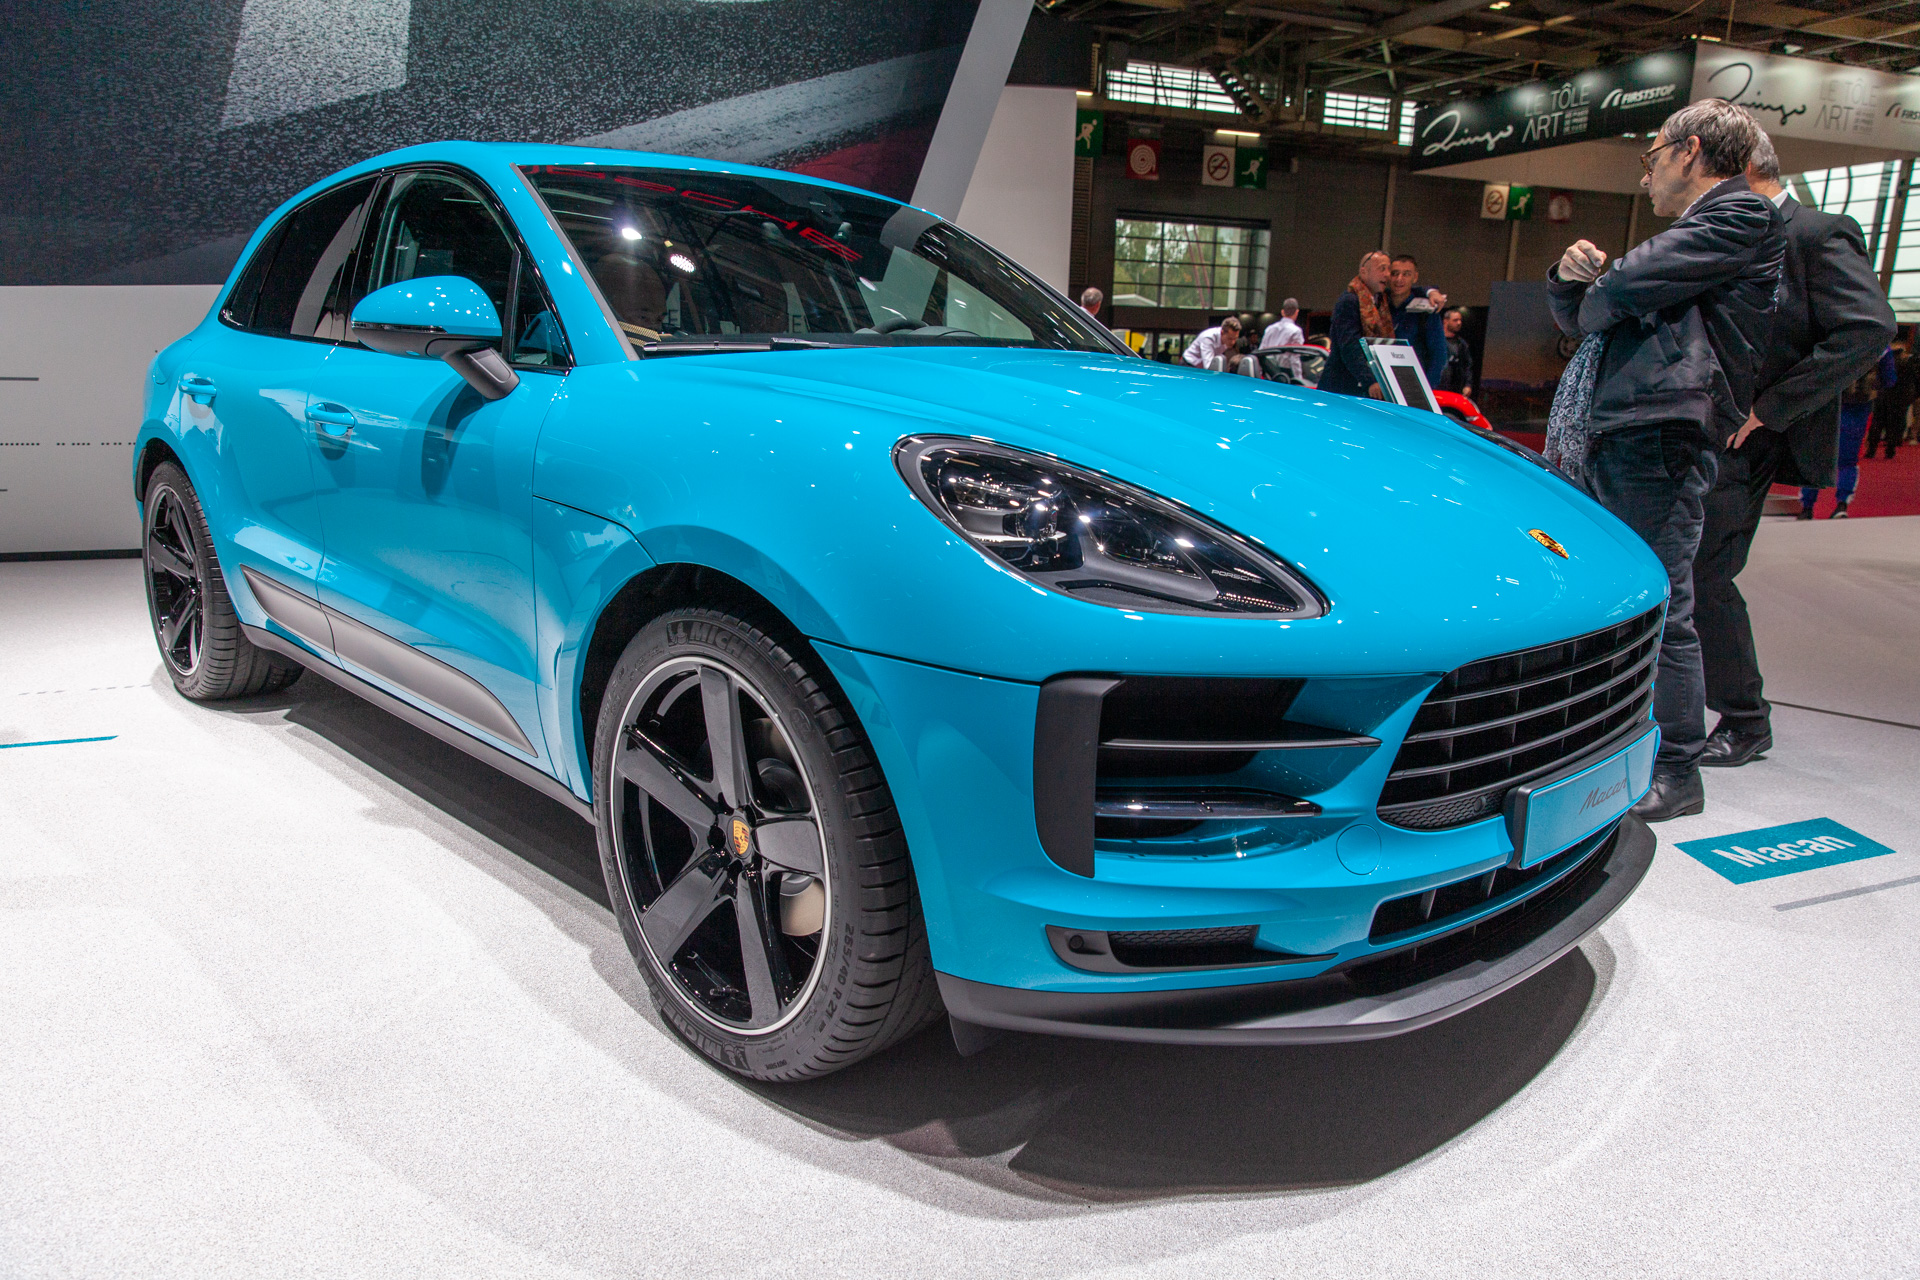 2019 porsche macan brings new look to 2018 paris auto show. Black Bedroom Furniture Sets. Home Design Ideas